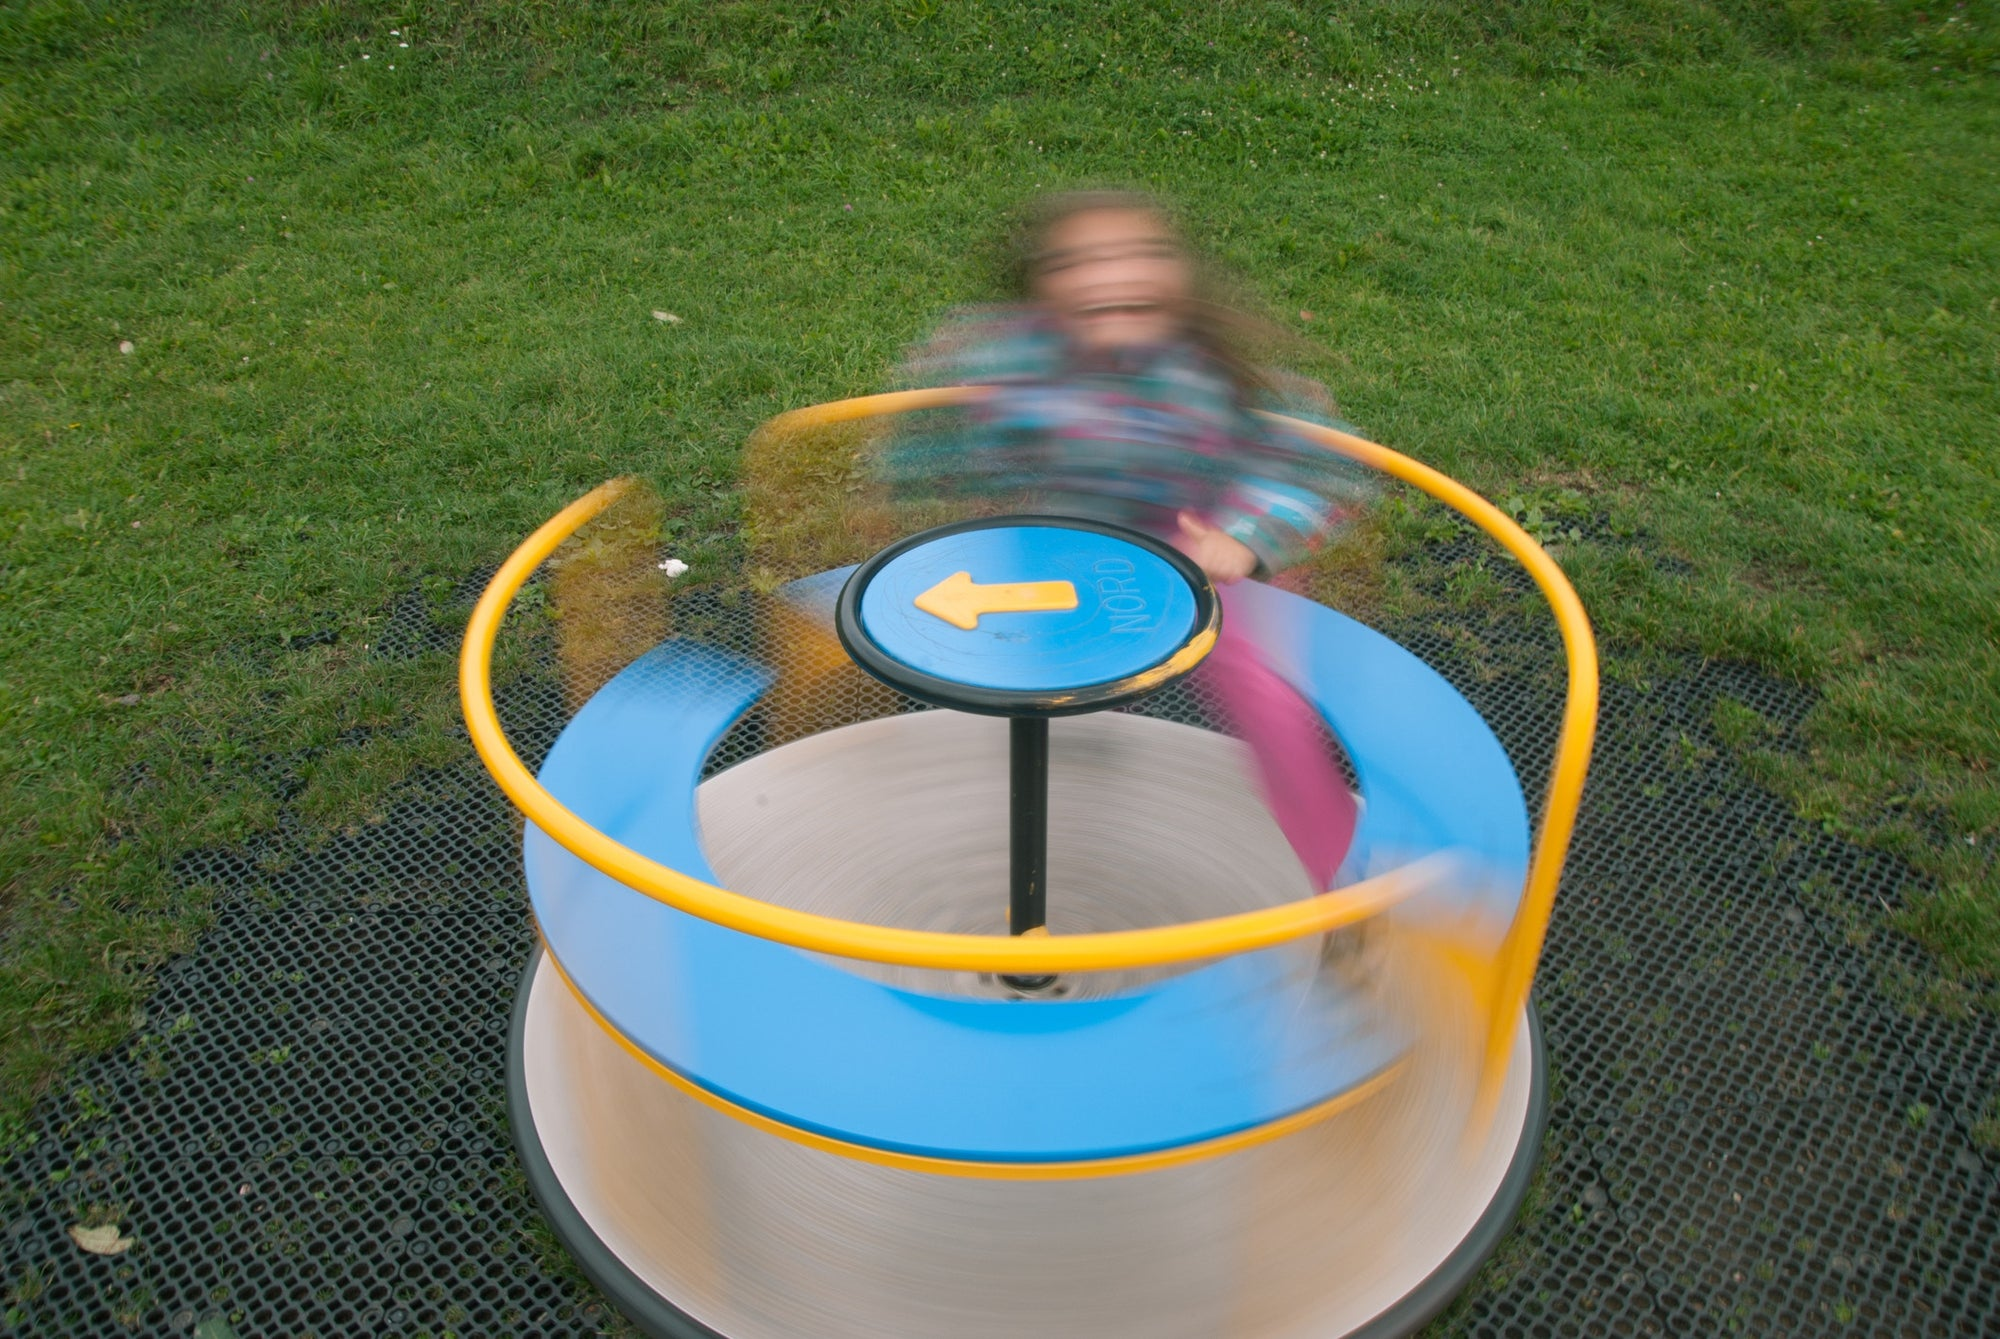 child spinning on playground roundabout